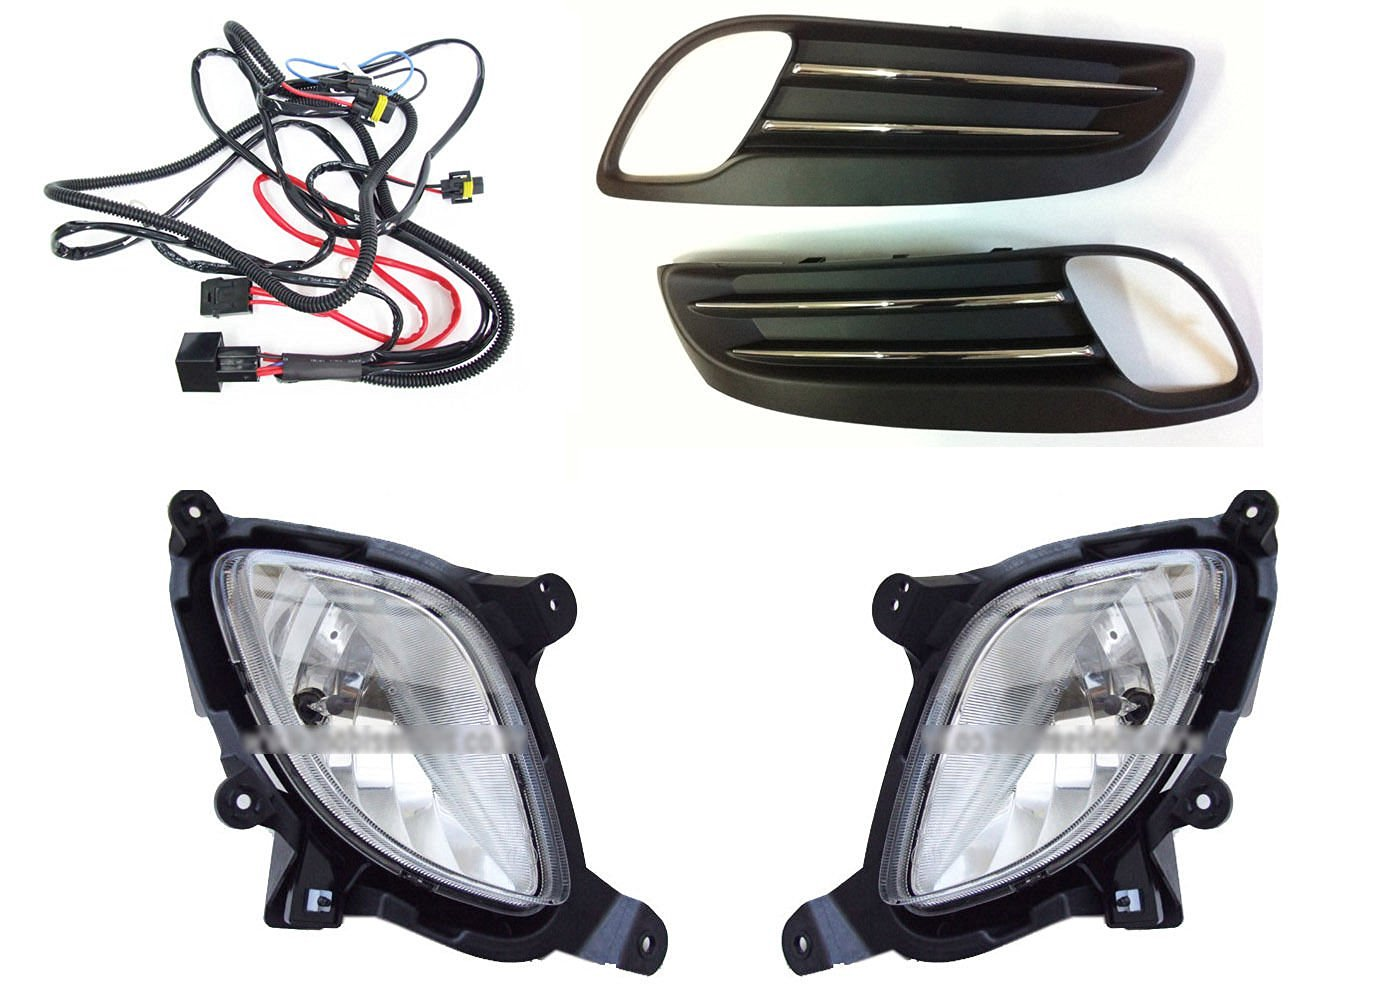 [Sell by Automotiveapple] Hyundai Motors OEM Genuine Front LH RH Fog Lights  Lamp Assembly